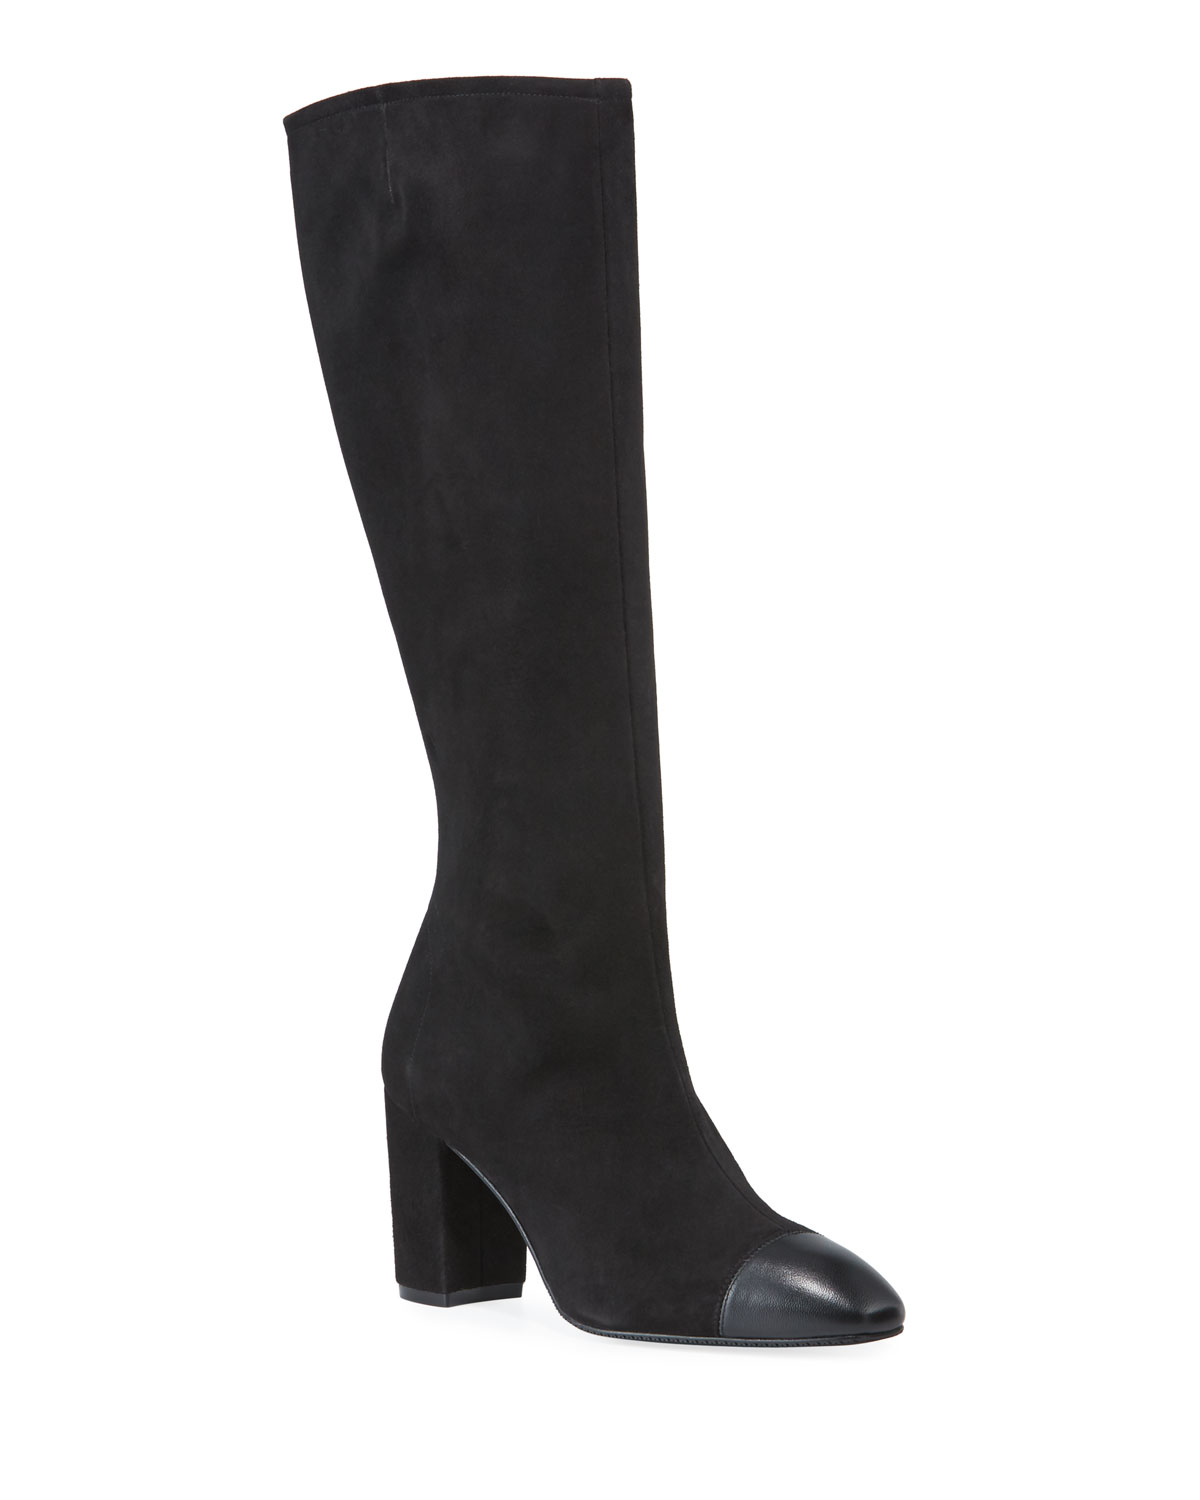 Jacinda Suede & Napa Leather Knee Boots by Stuart Weitzman